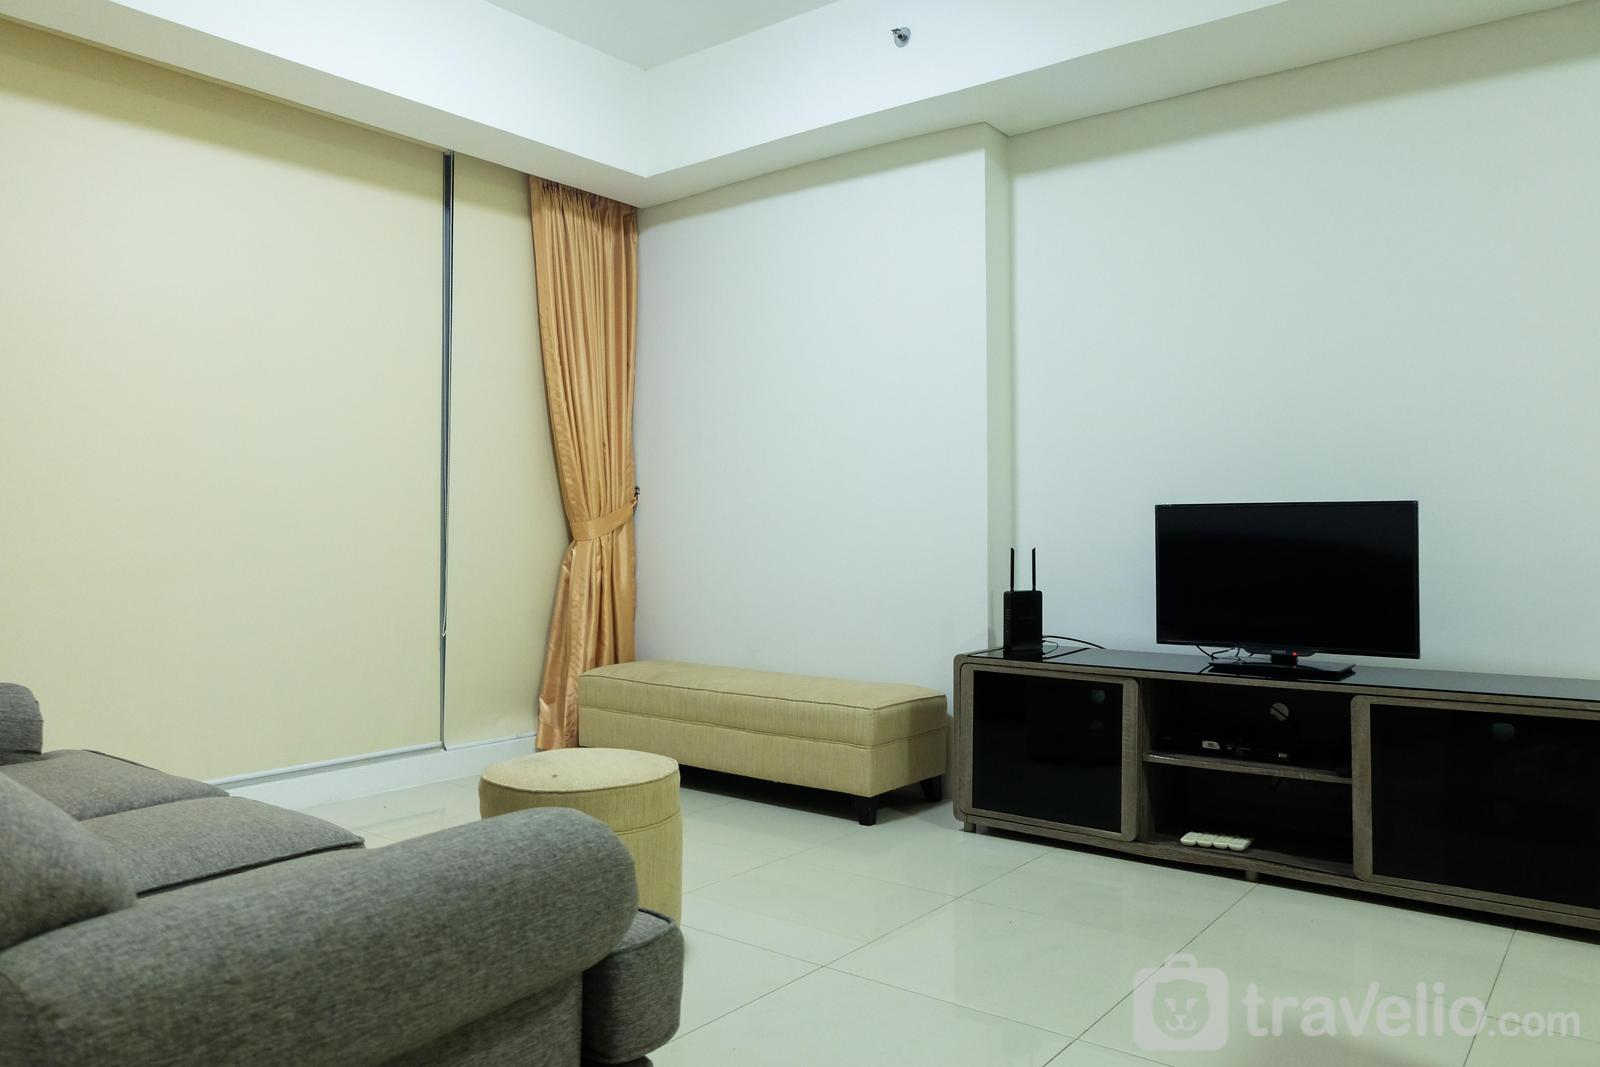 Kemang Village - Cozy and Elegant 2BR Kemang Village Apartment By Travelio